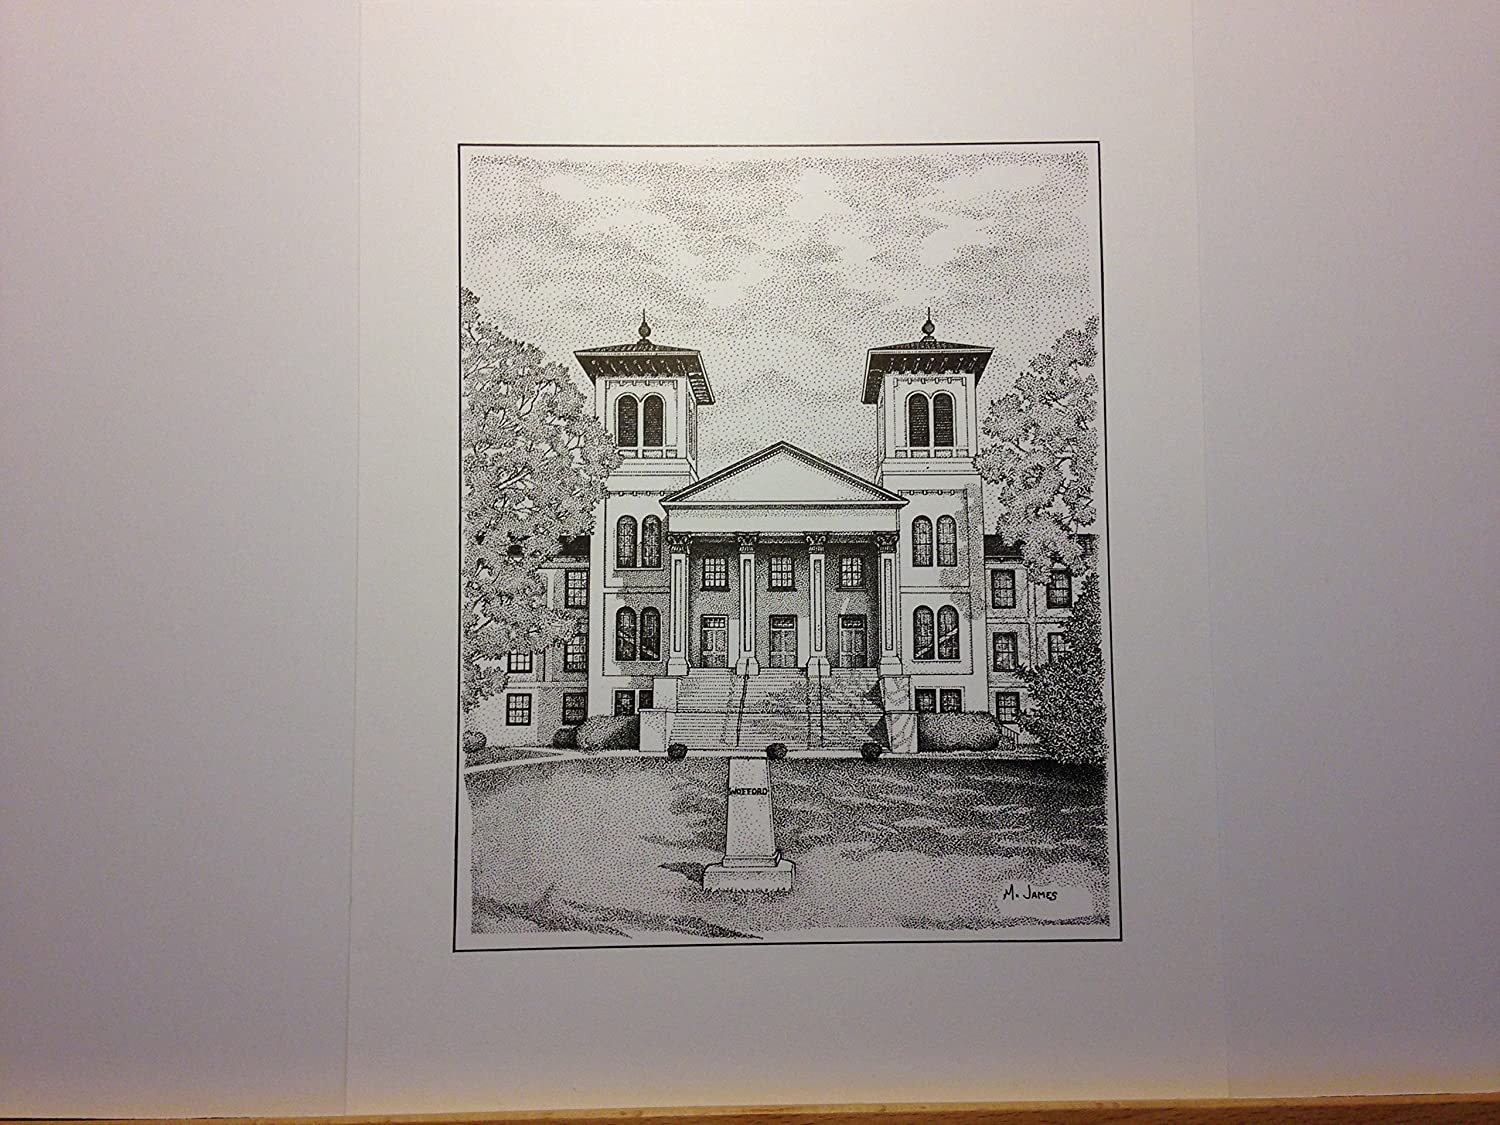 Wofford Old Main 9x12 pen and ink print